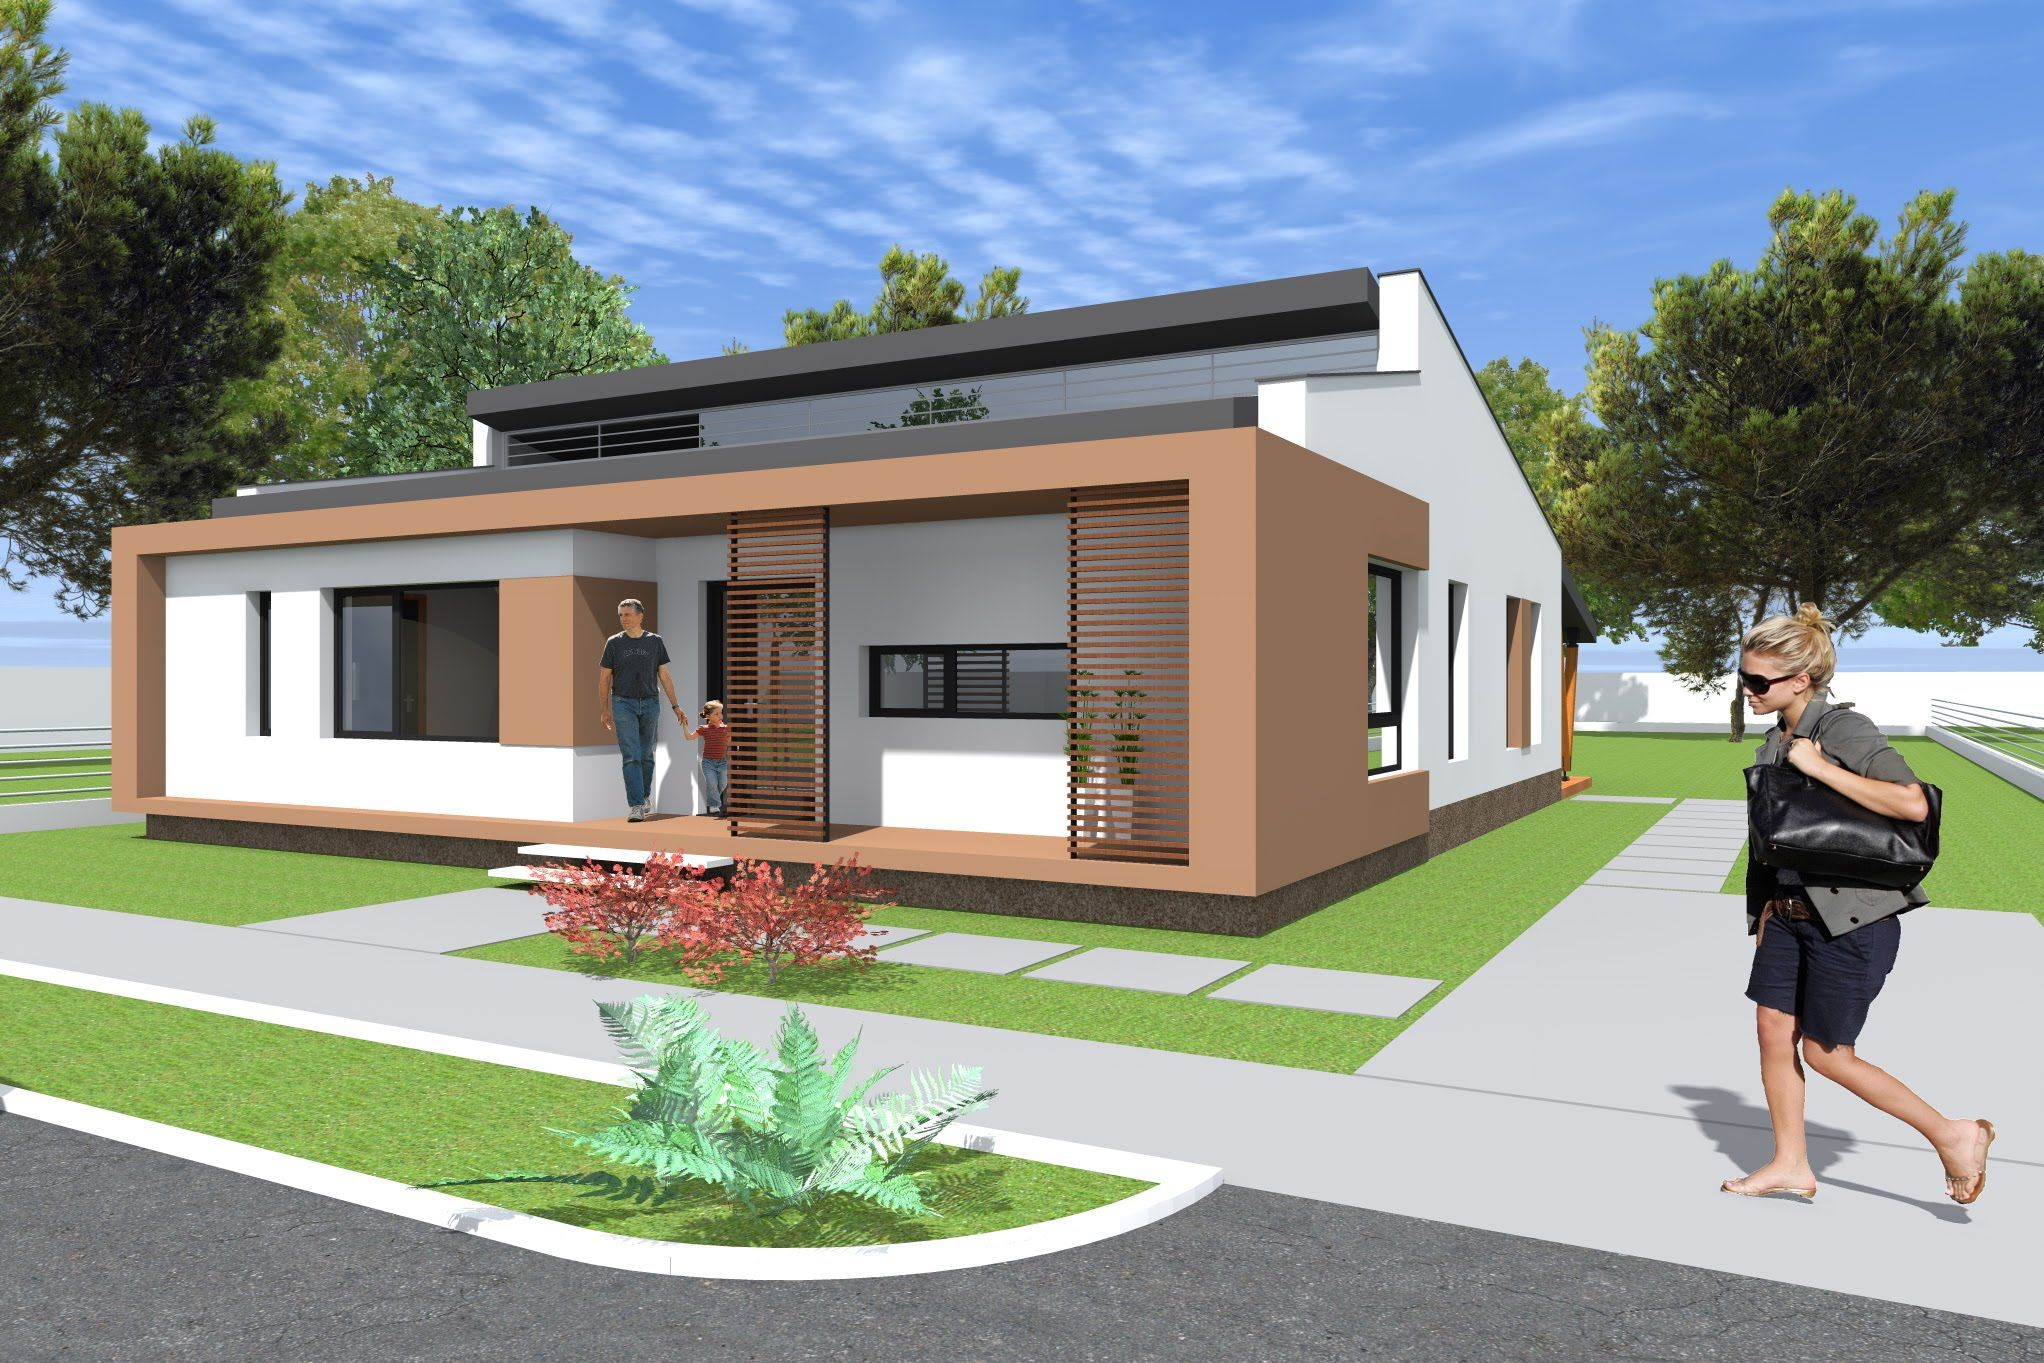 Small modern bungalow house design 133 square meters Modern bungalow house